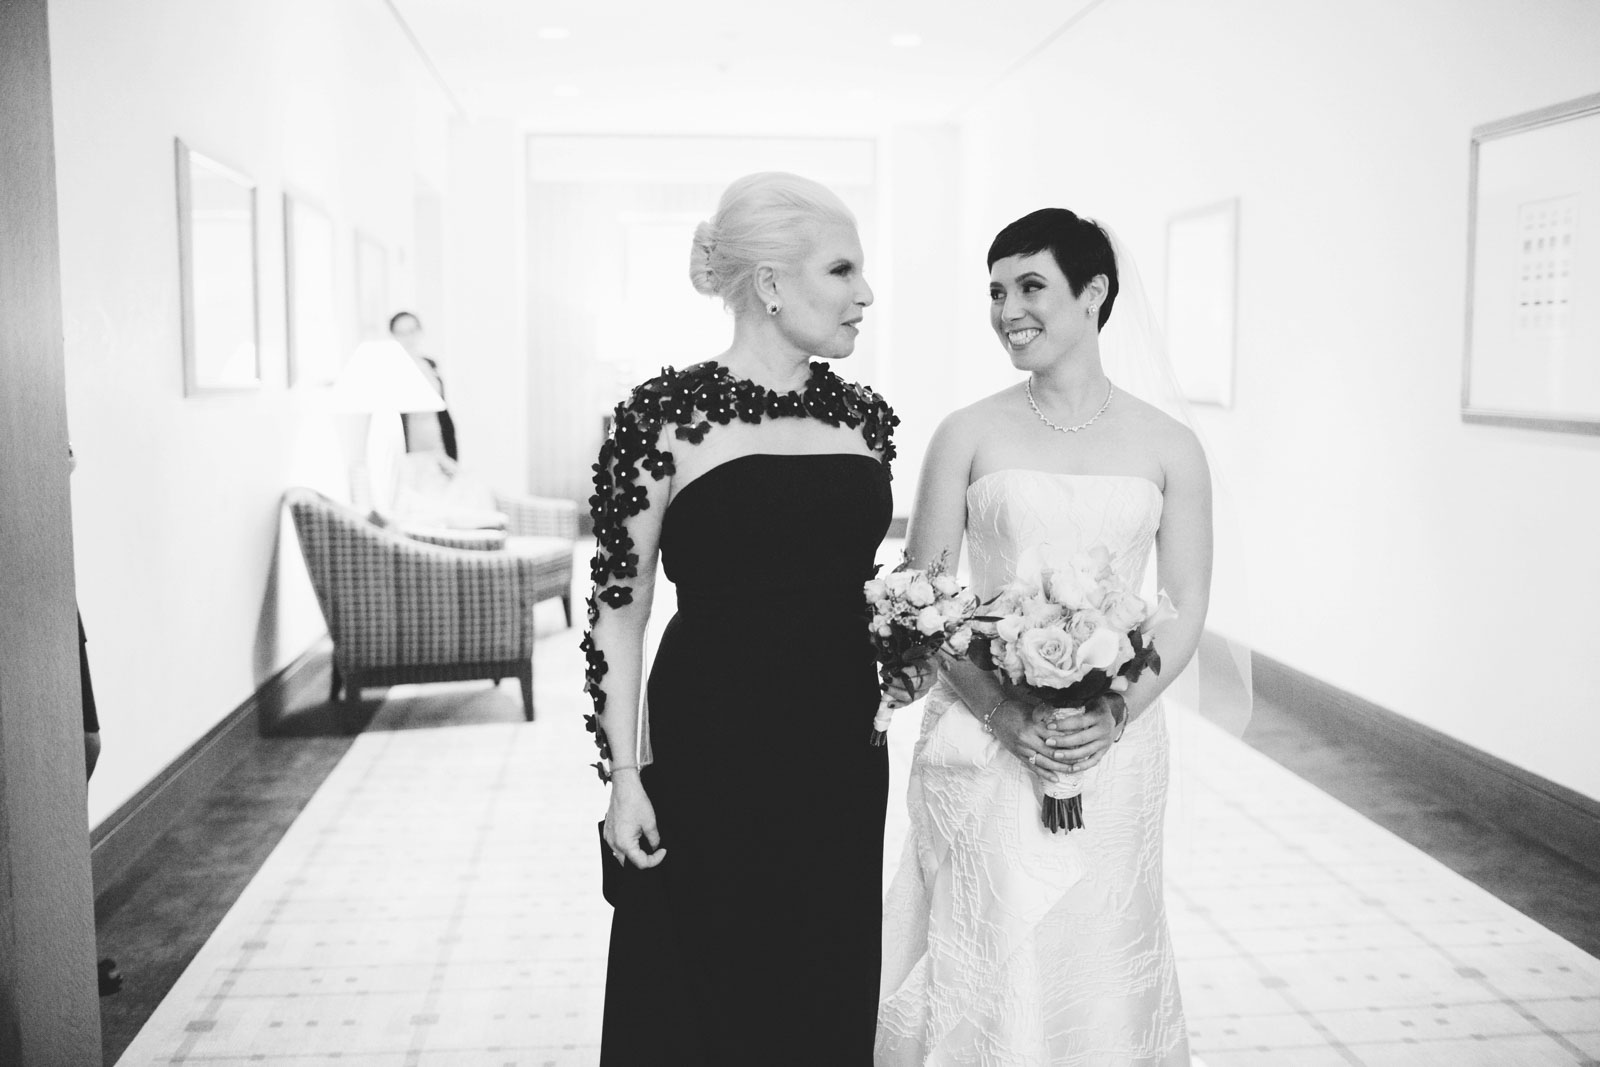 Bride and mother of bride smile at each other as they wait to walk down aisle together